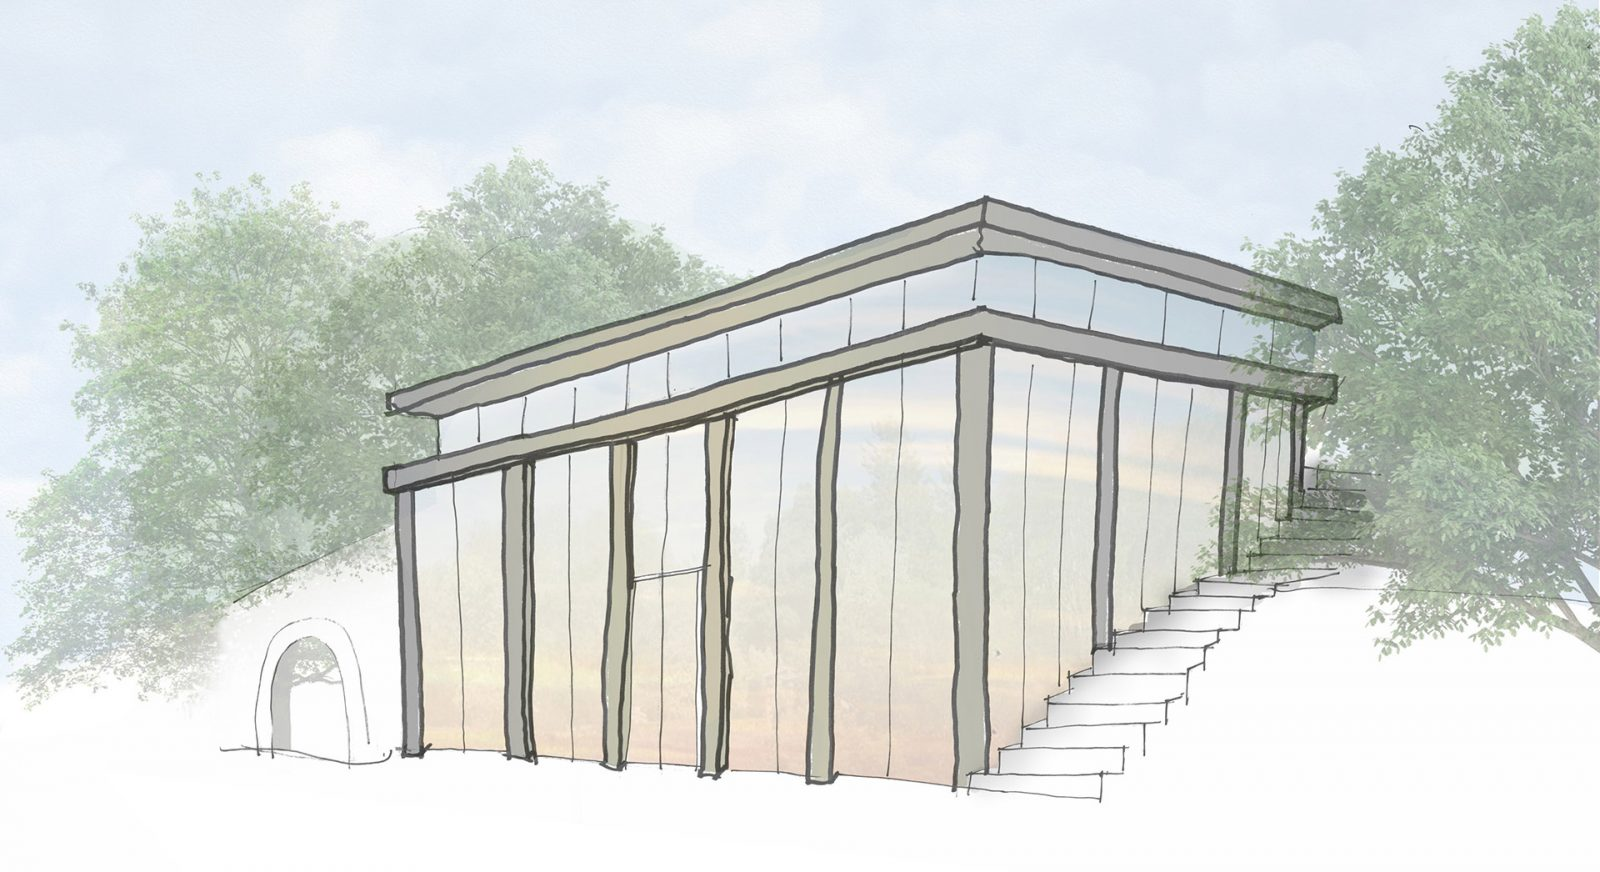 FT manor house orangery modern house architecture architects jersey architects11